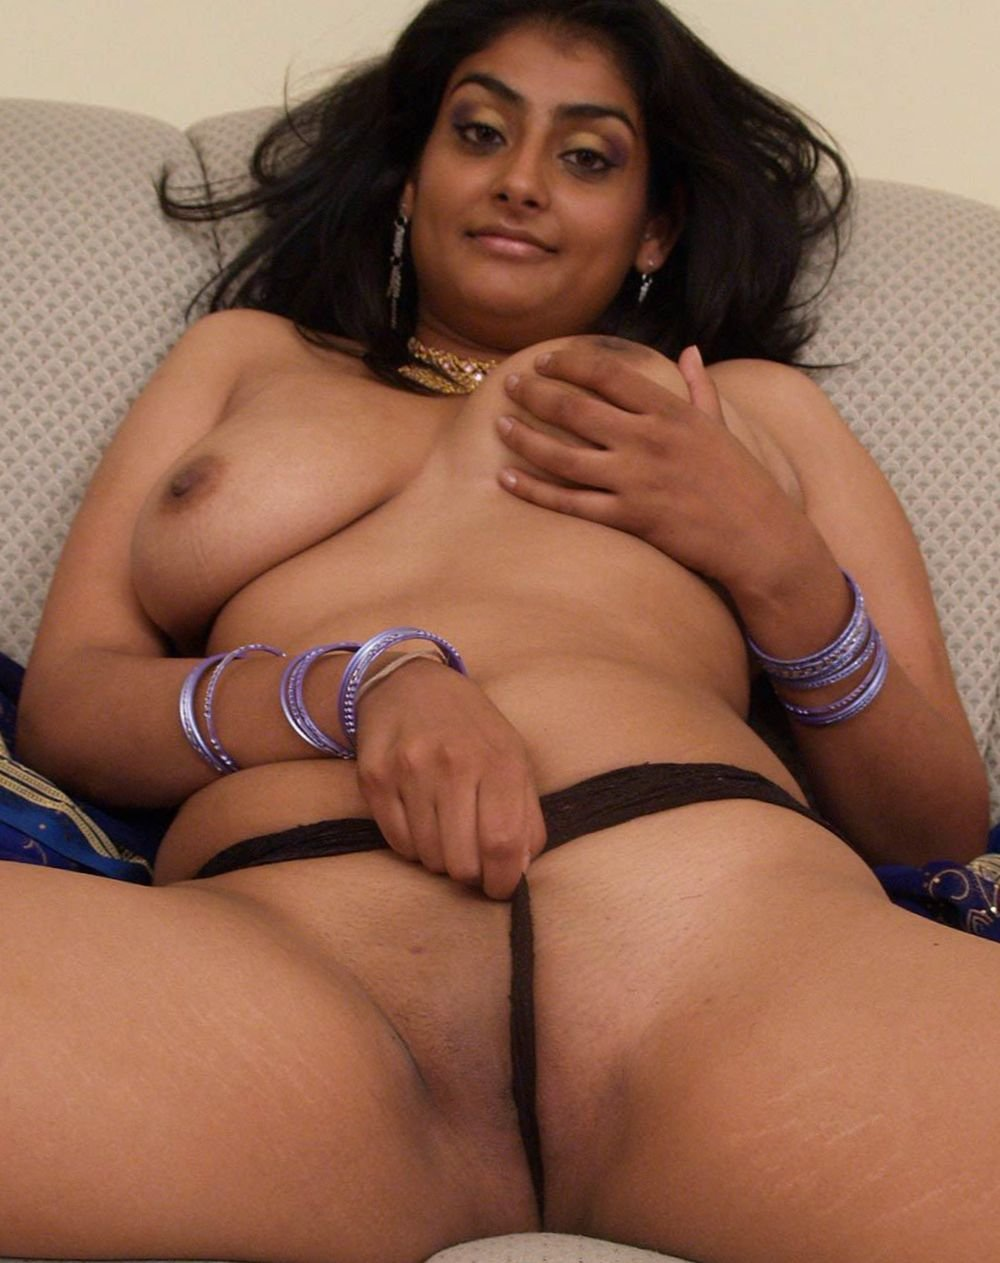 Adult home movie site